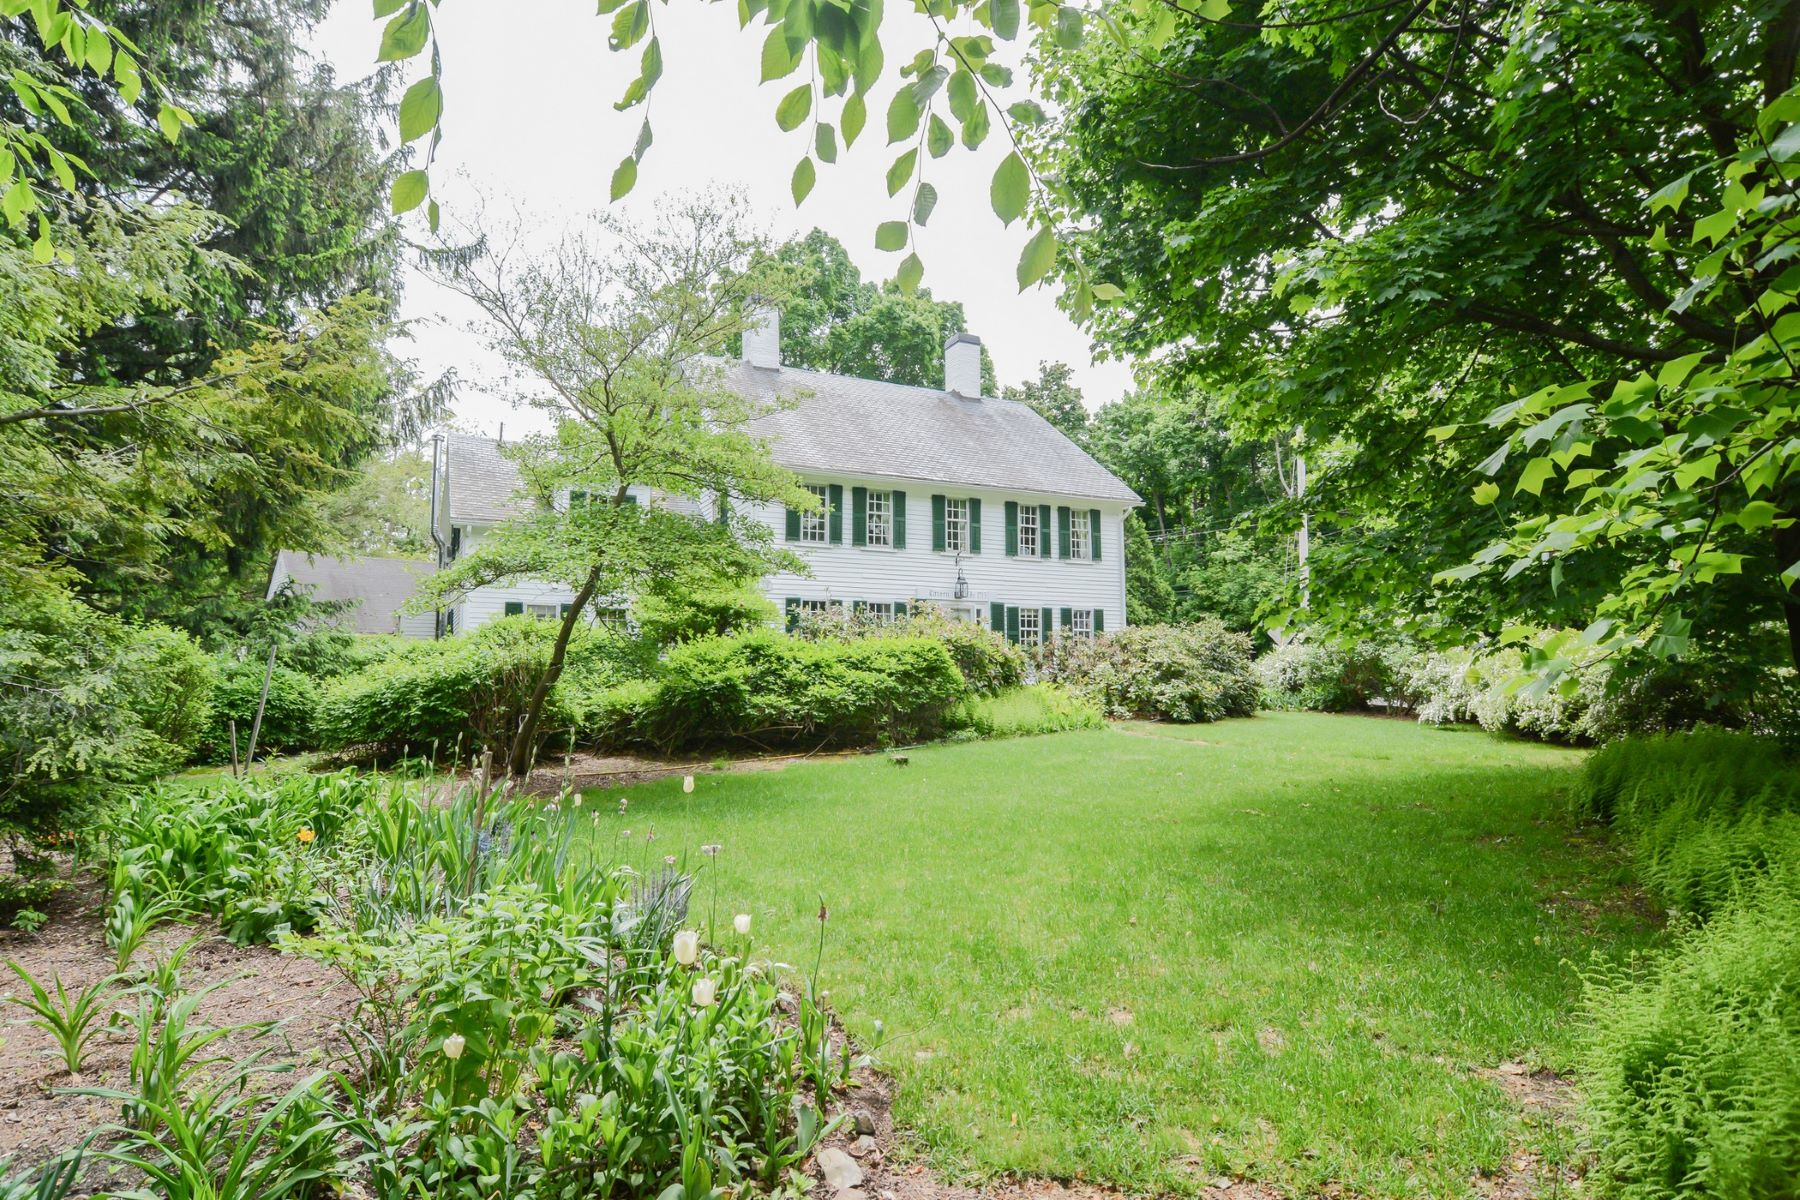 Single Family Homes for Sale at 2 Hildreth Street, Westford 2 Hildreth St Westford, Massachusetts 01886 United States